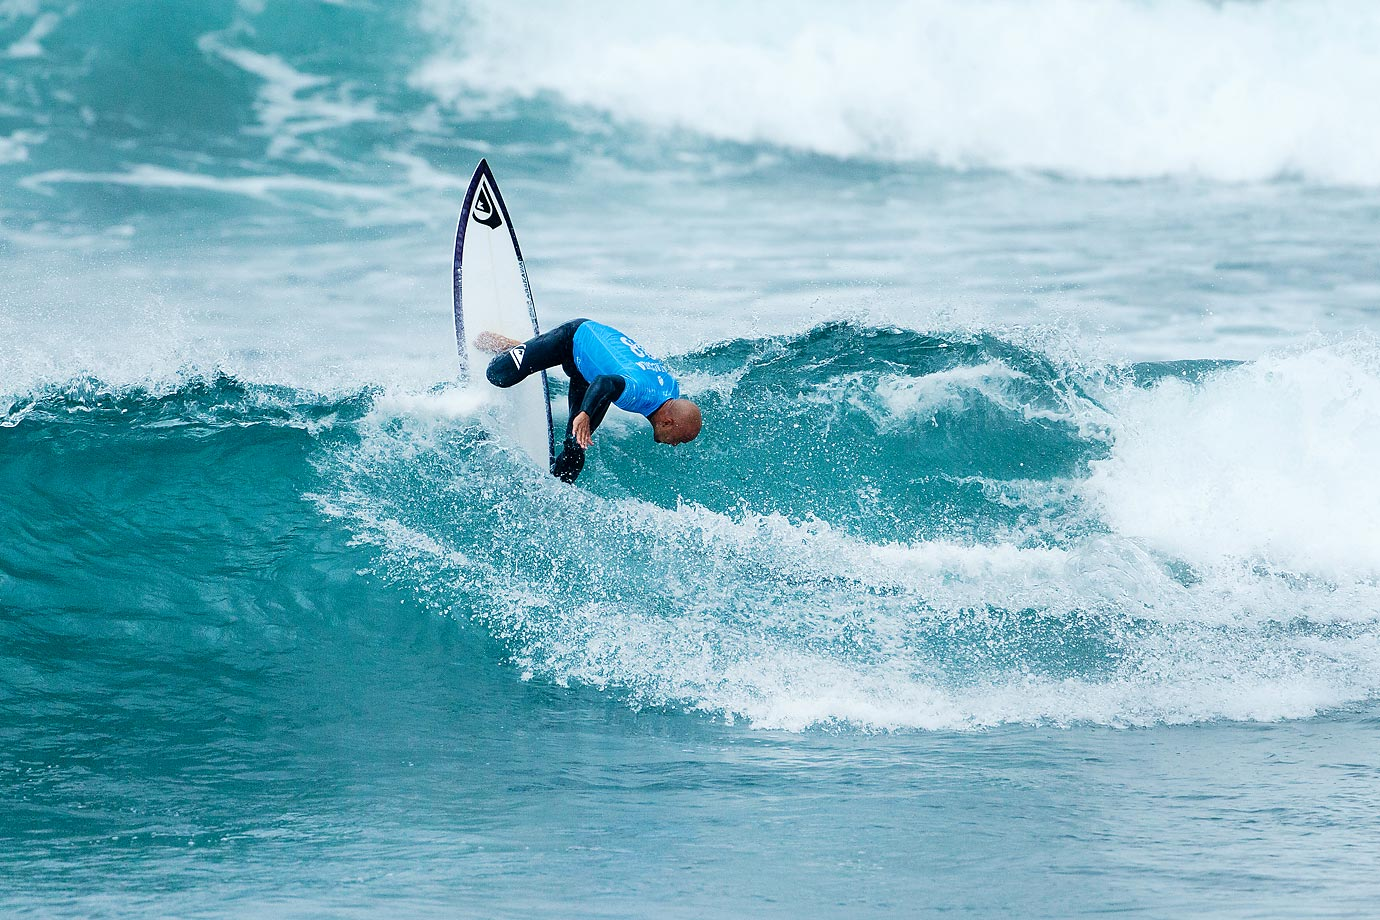 Fred Patacchia seems to be facing the wrong direction at the Rip Curl Pro Bells Beach in Australia.